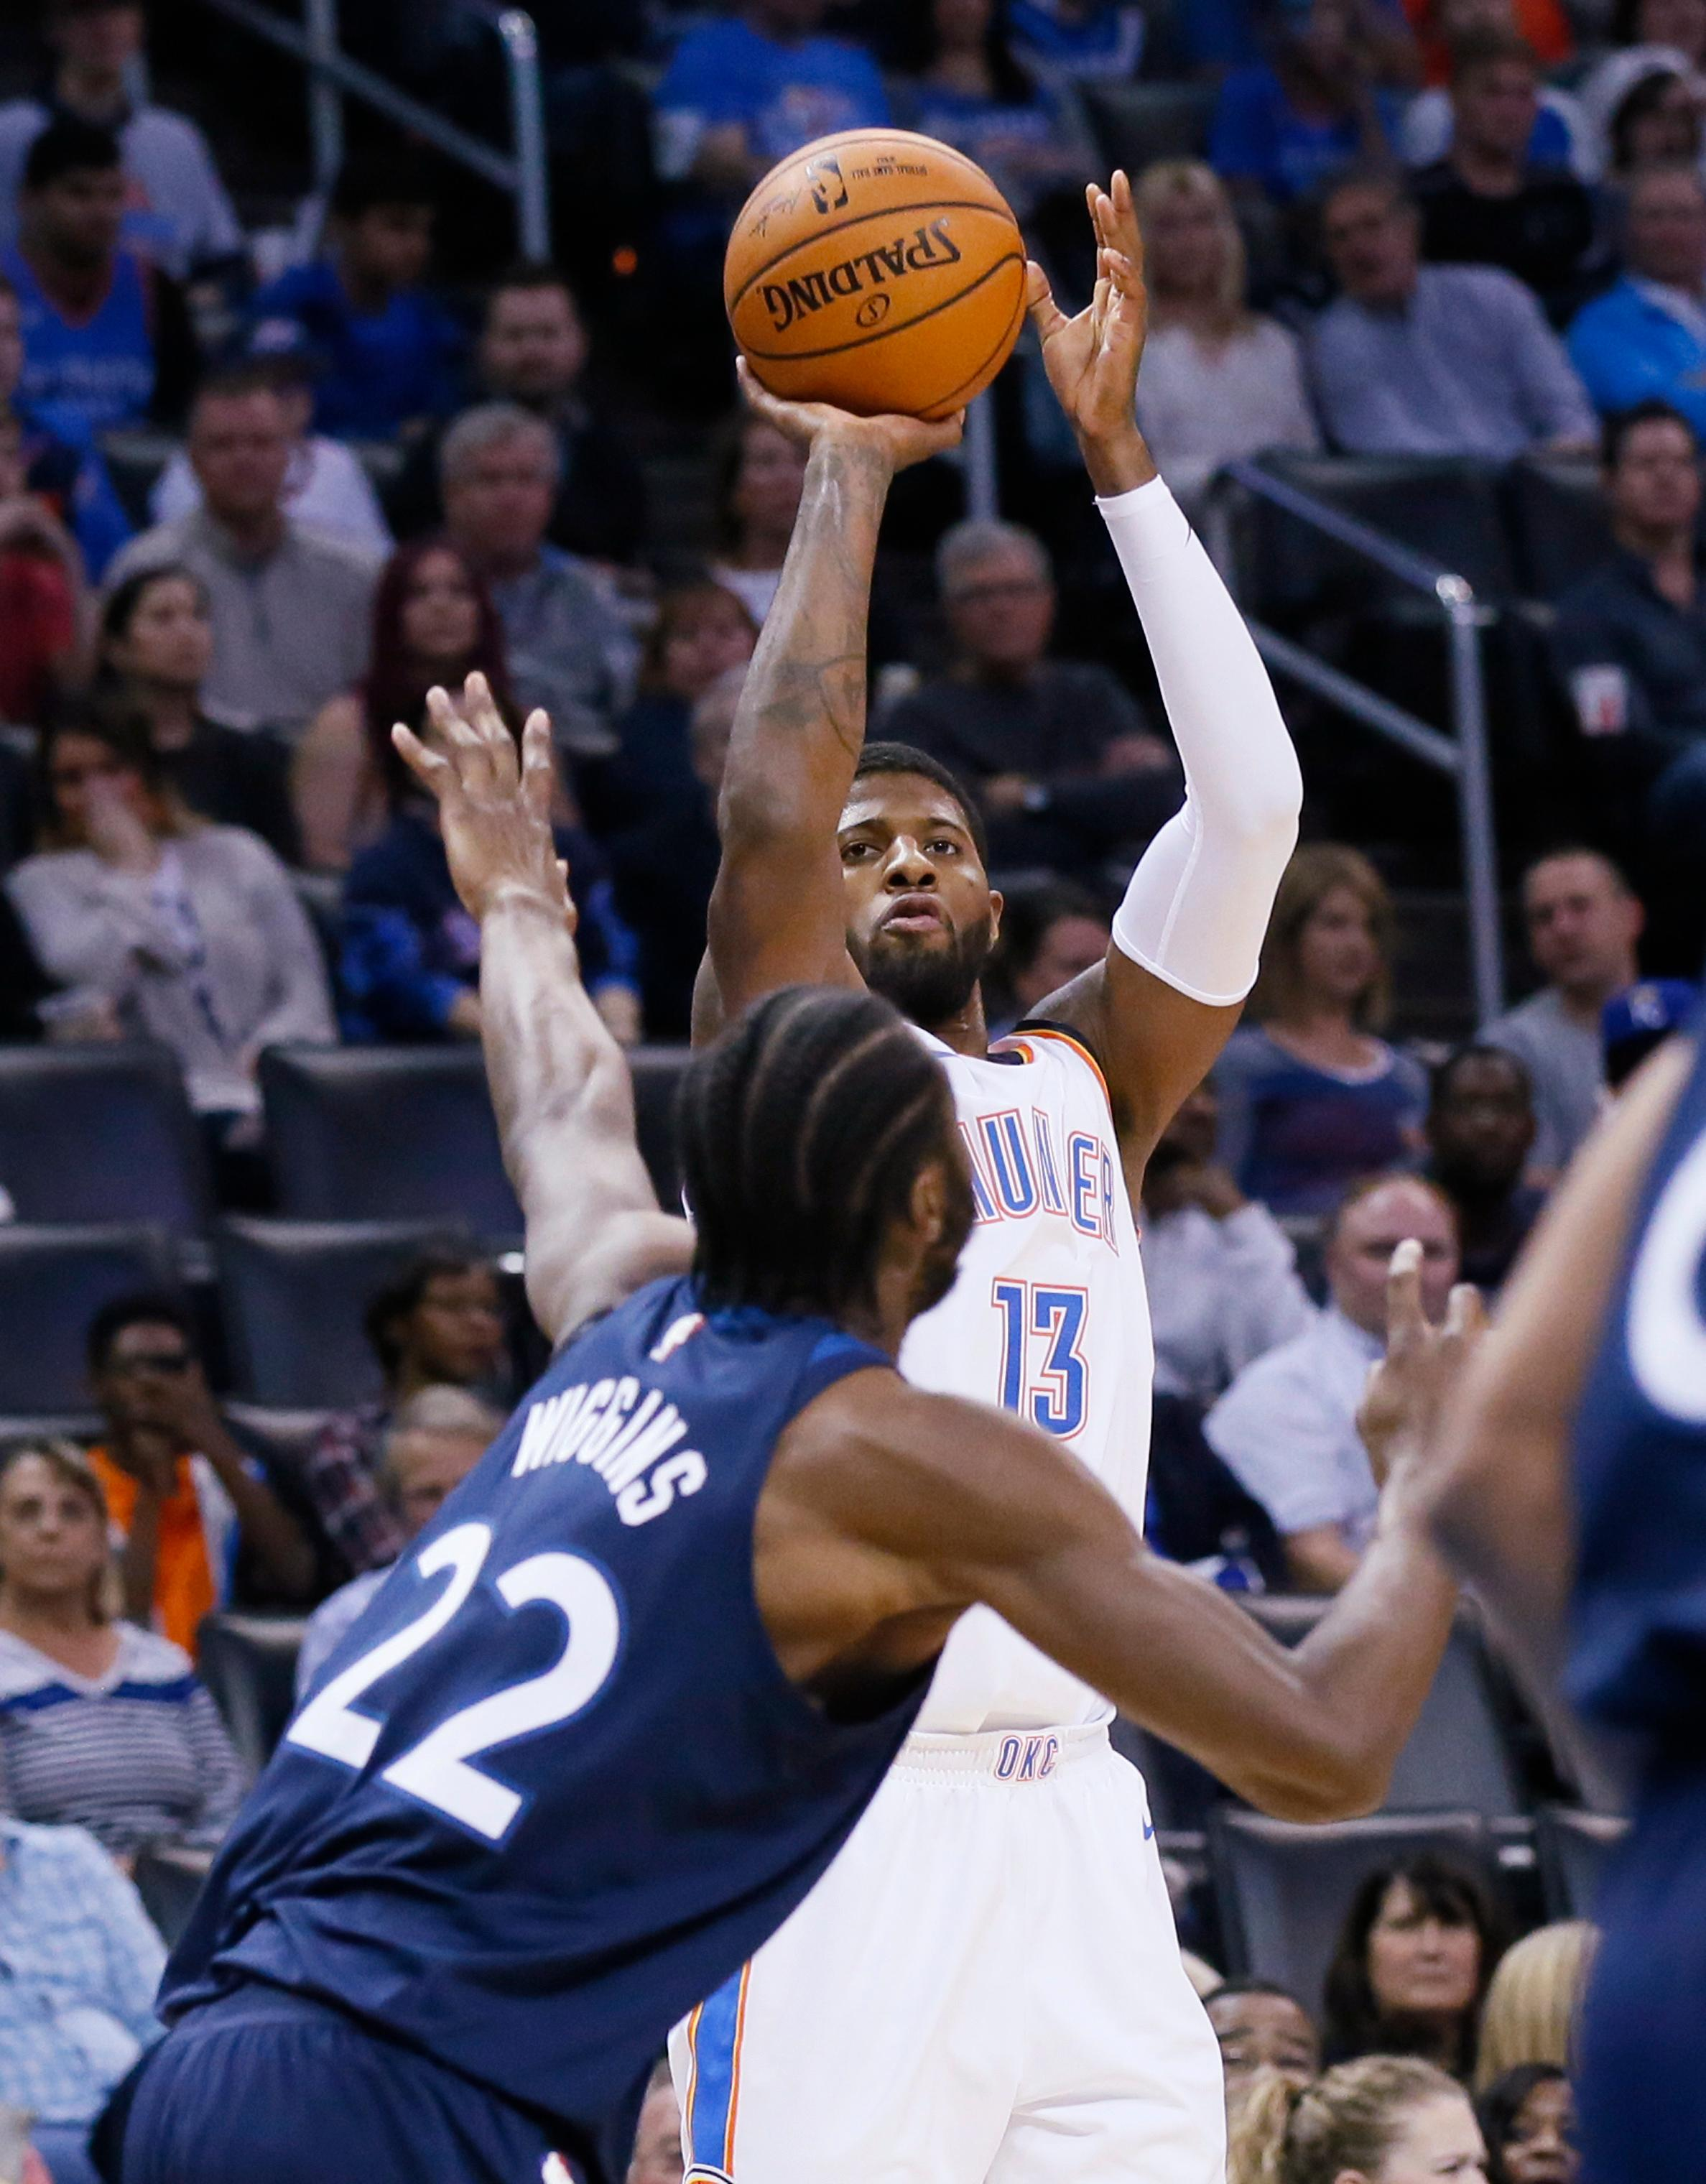 Oklahoma City Thunder forward Paul George (13) shoots over Minnesota Timberwolves forward Andrew Wiggins (22) during the first quarter of an NBA basketball game in Oklahoma City, Friday, Dec. 1, 2017. (AP Photo/Sue Ogrocki)